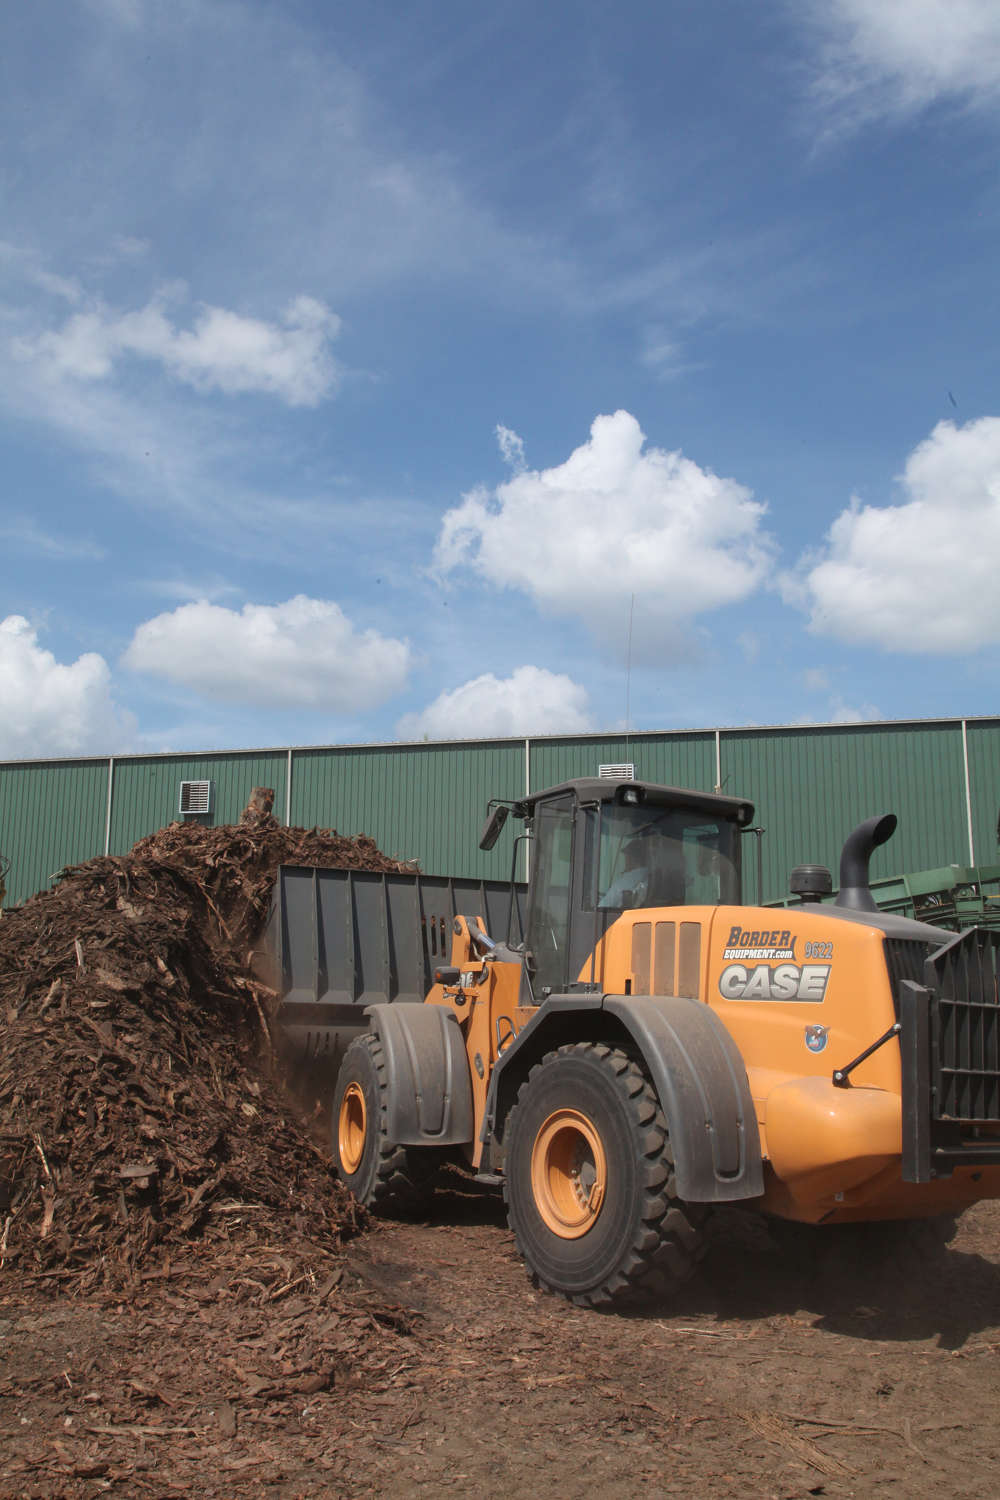 Battle credits his wheel loader fleet for keeping the operation running.